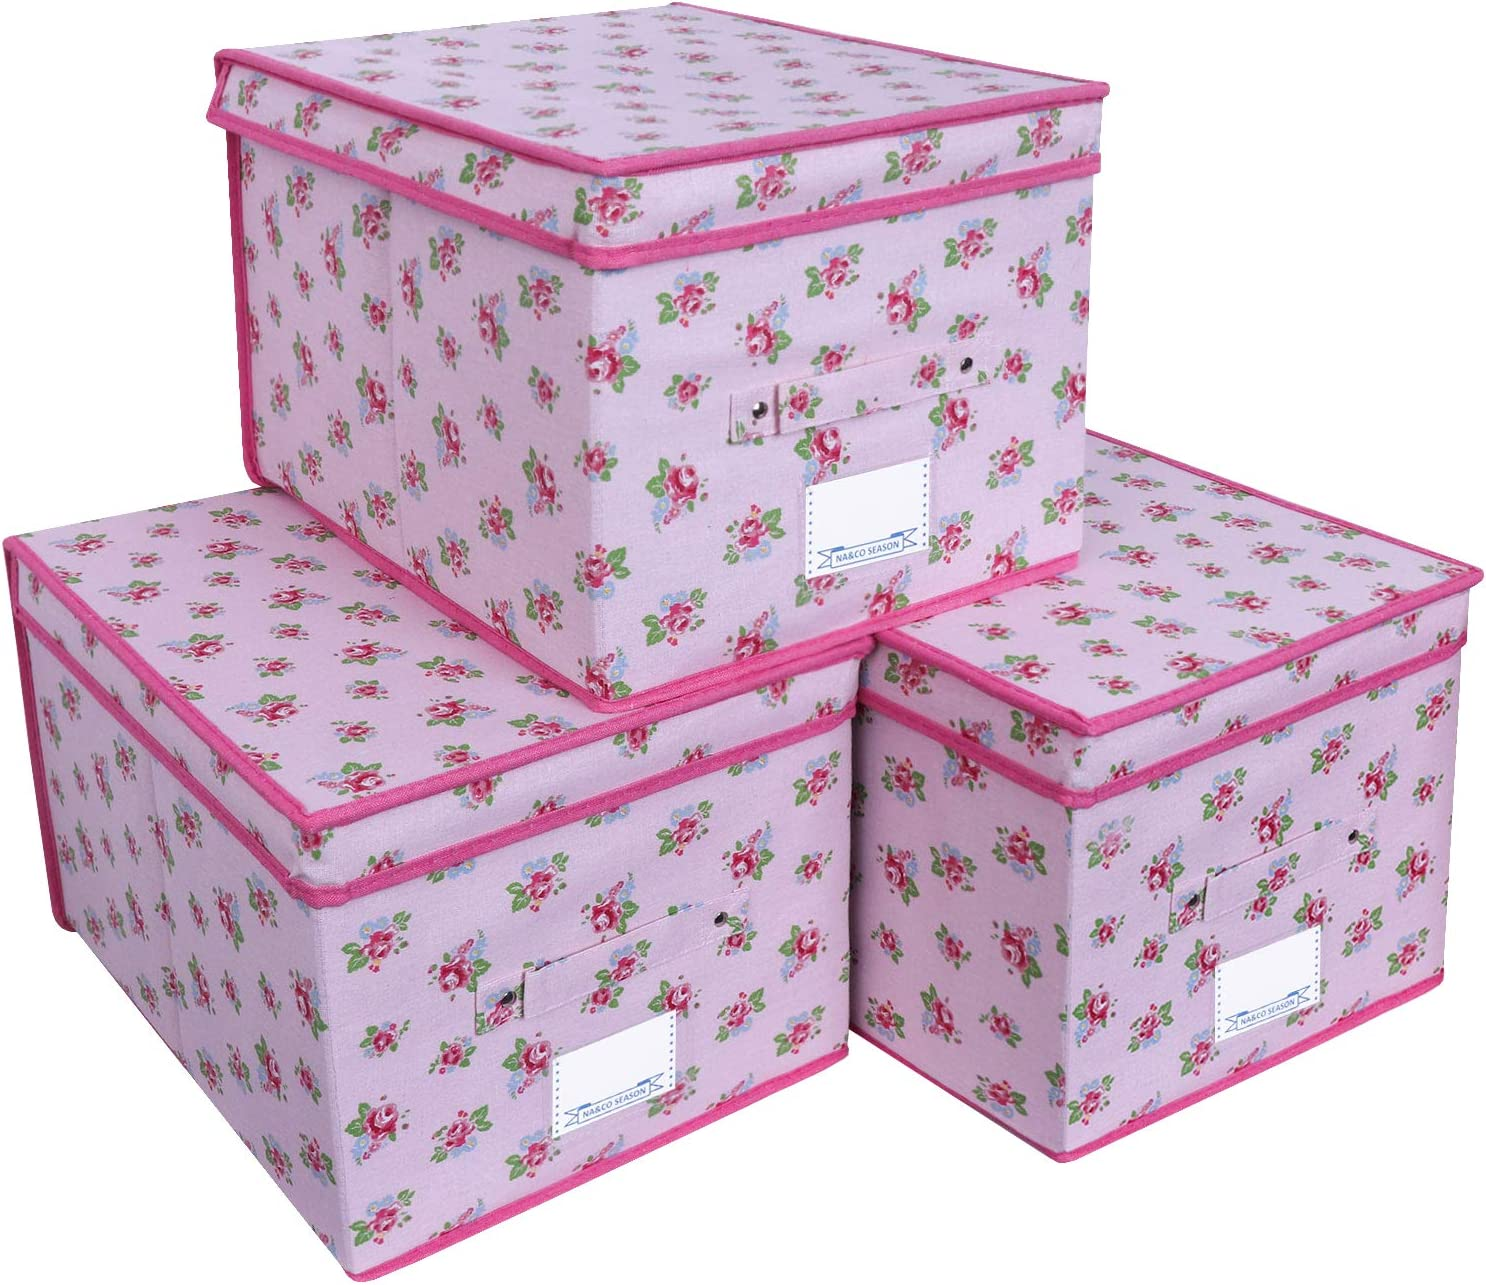 NA&CO SEASON 3 Pack Large Sturdy Foldable Storage Bins, Polyester Fabric Storage Boxes with Lids and Handle,Containers Organizer for Home, Nursery, Closet, Office